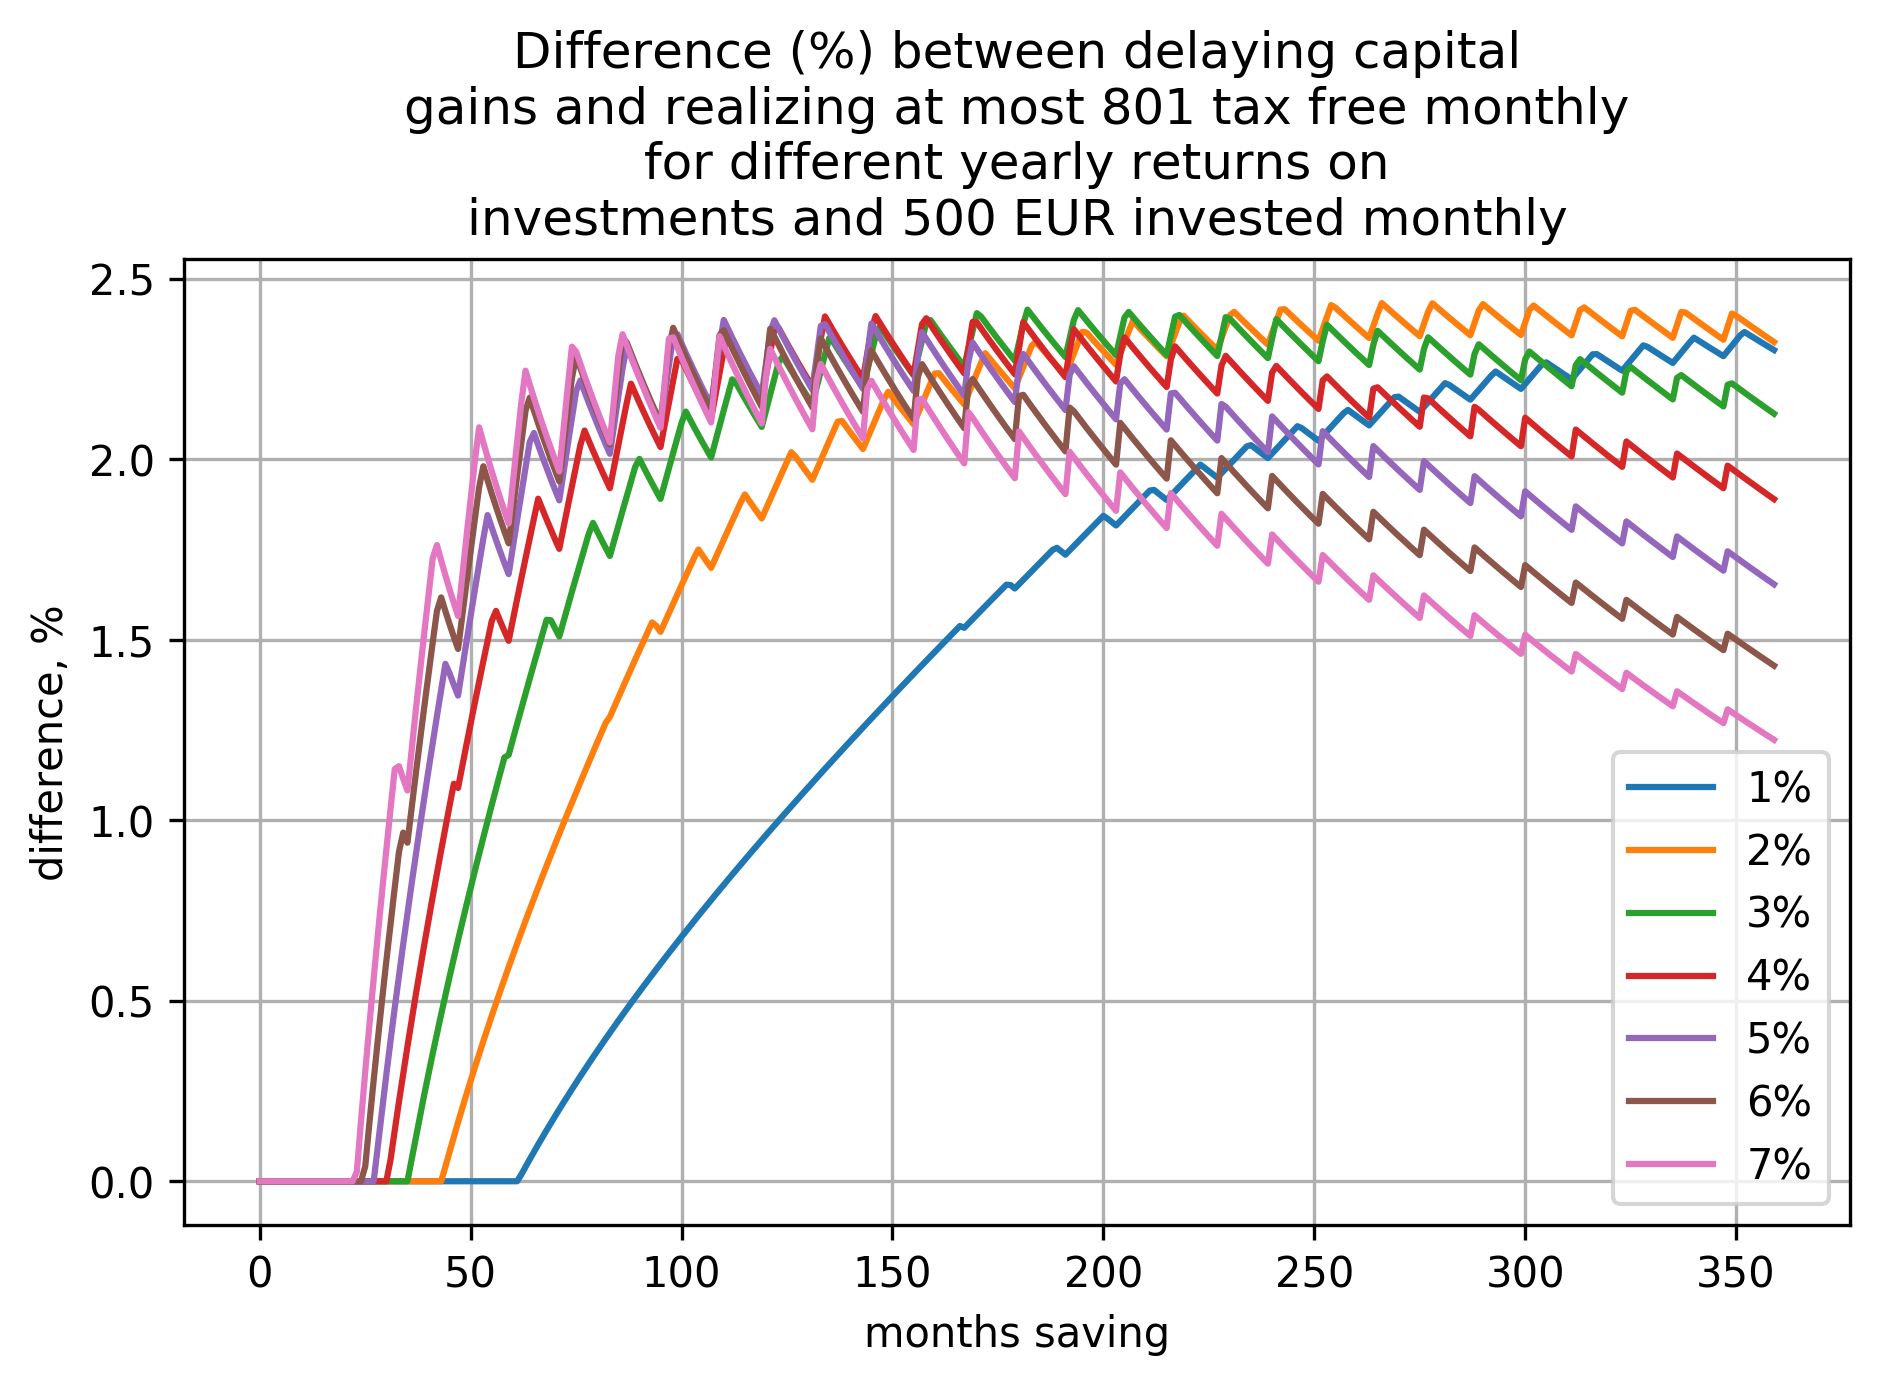 a plot showing how difference (in percents) between the two cases (delaying capital gains and realizing at most 801€ tax free yearly) depends on time saving and yearly return on investment when investing 500€ per month